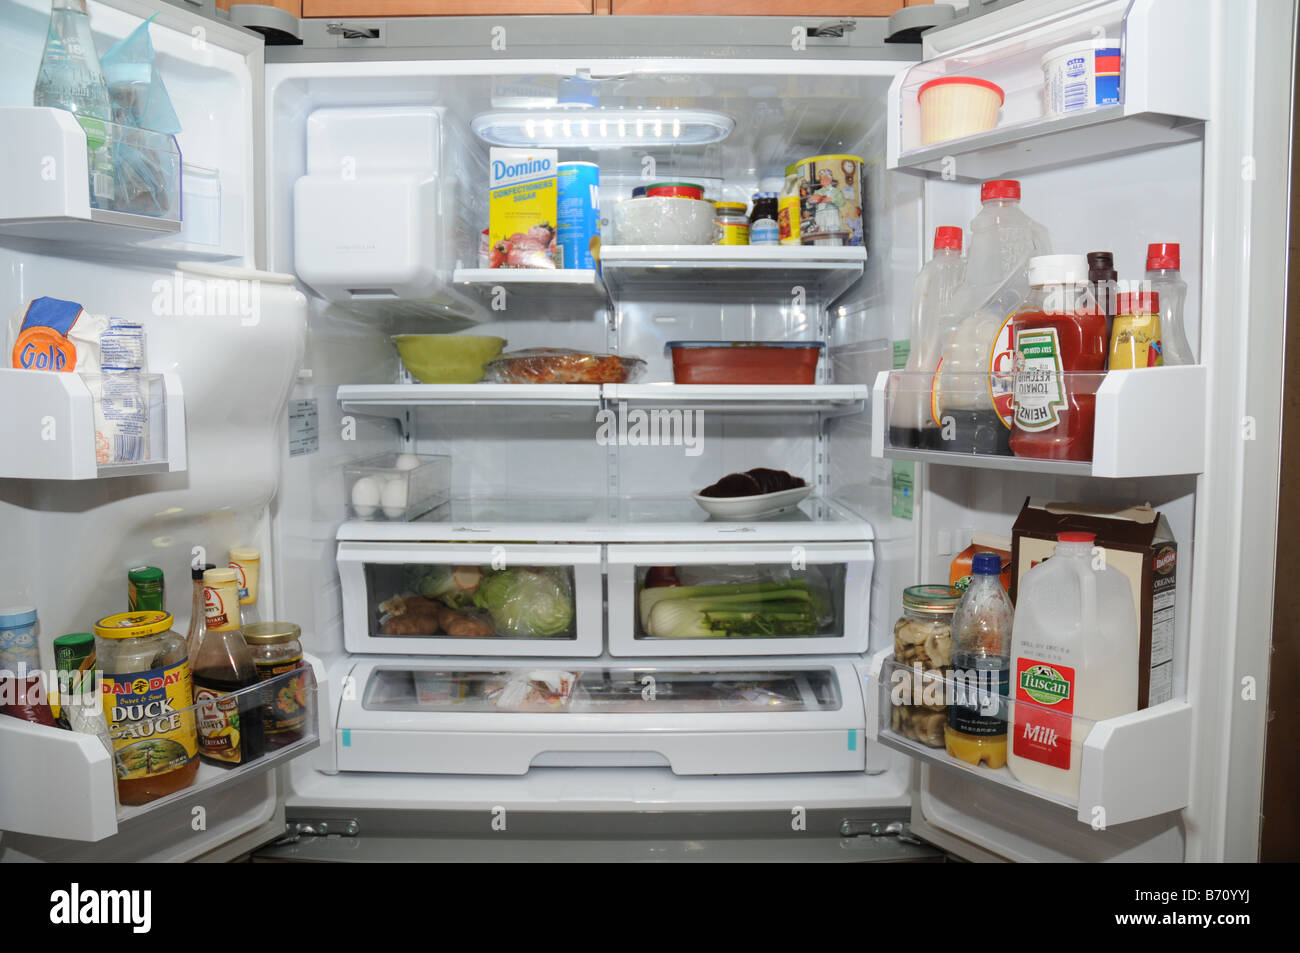 Open Double Door Refrigerator Exposing The Contents Inside